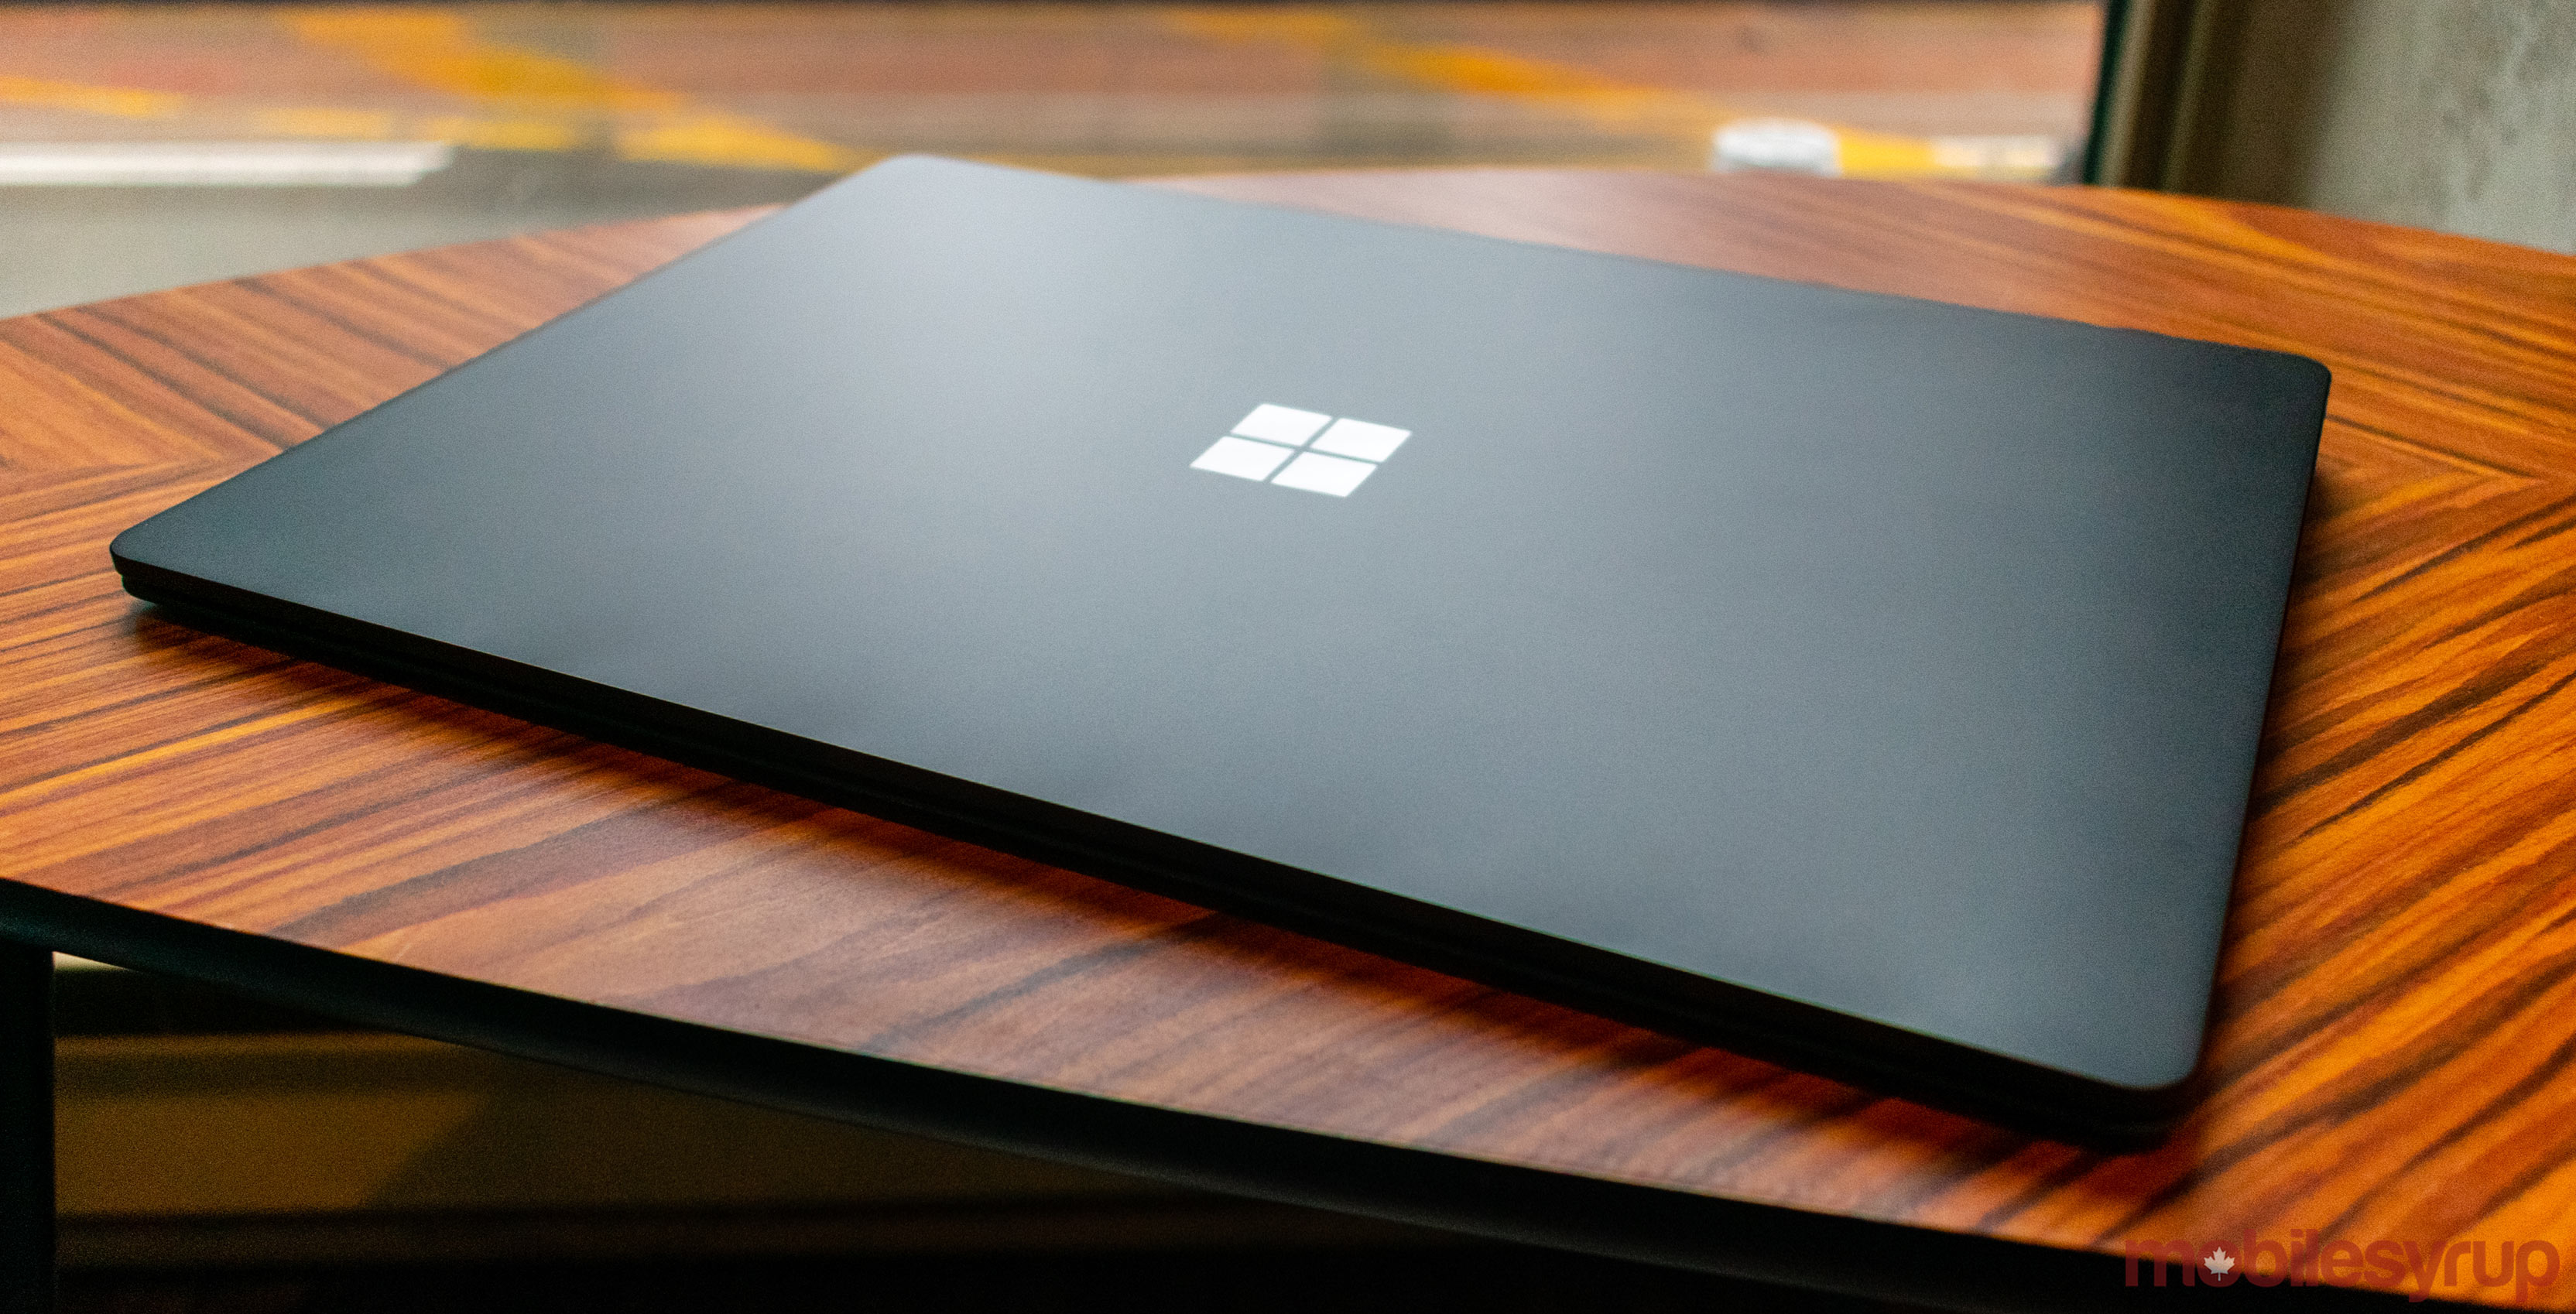 Microsoft working on 'Lite OS' to compete with Chrome OS: report